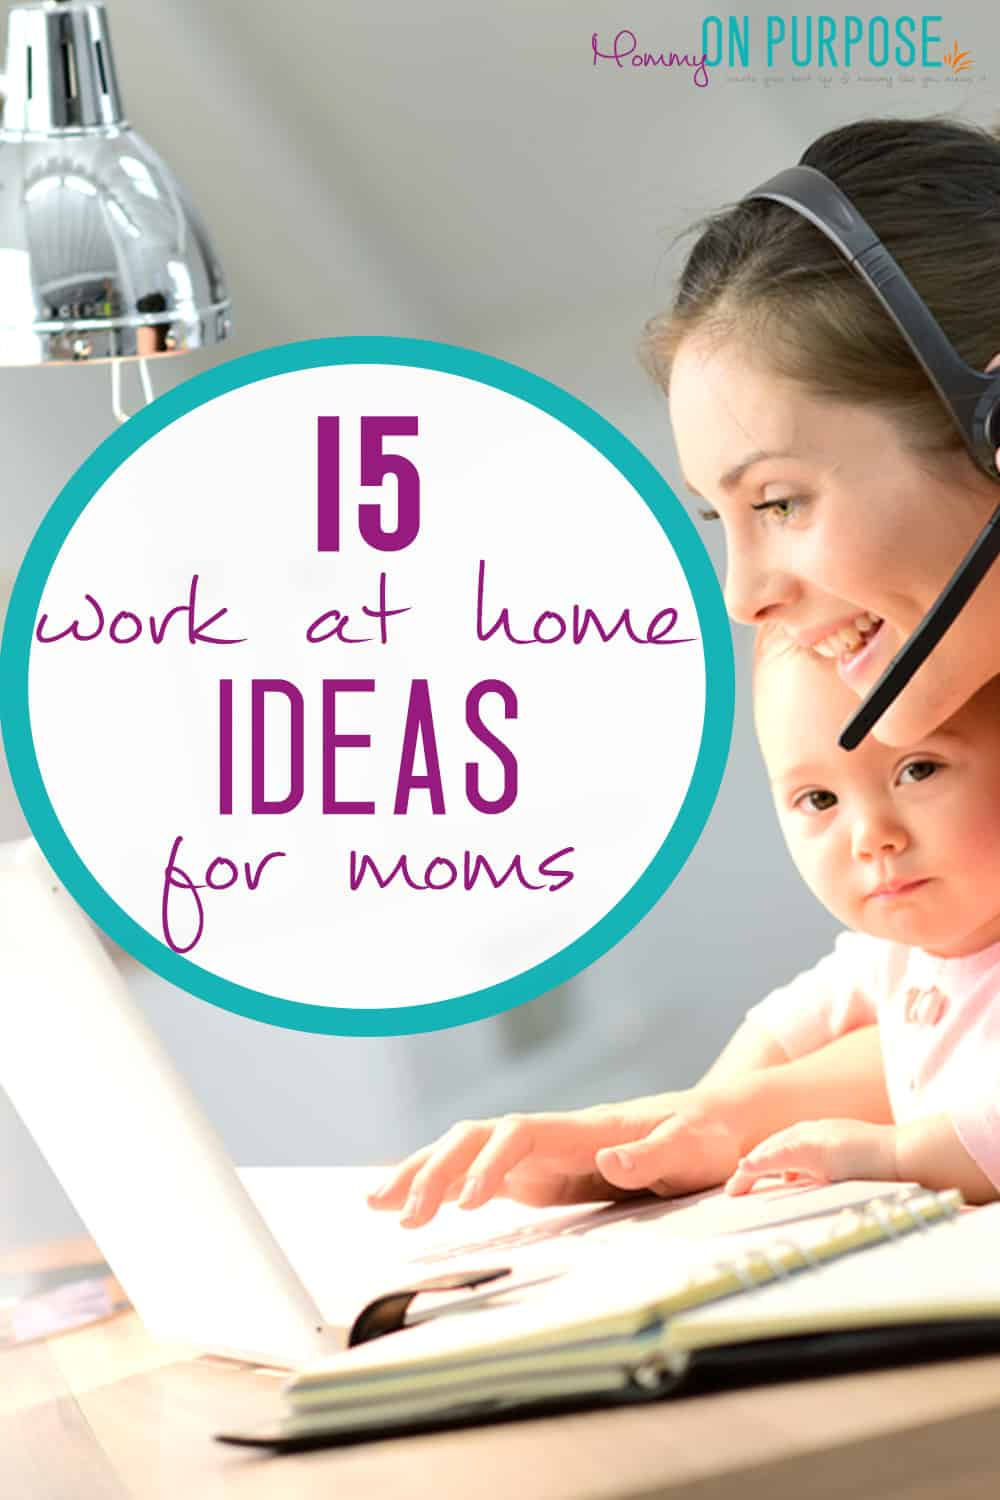 work at home ideas for moms 2 - Mommy on Purpose